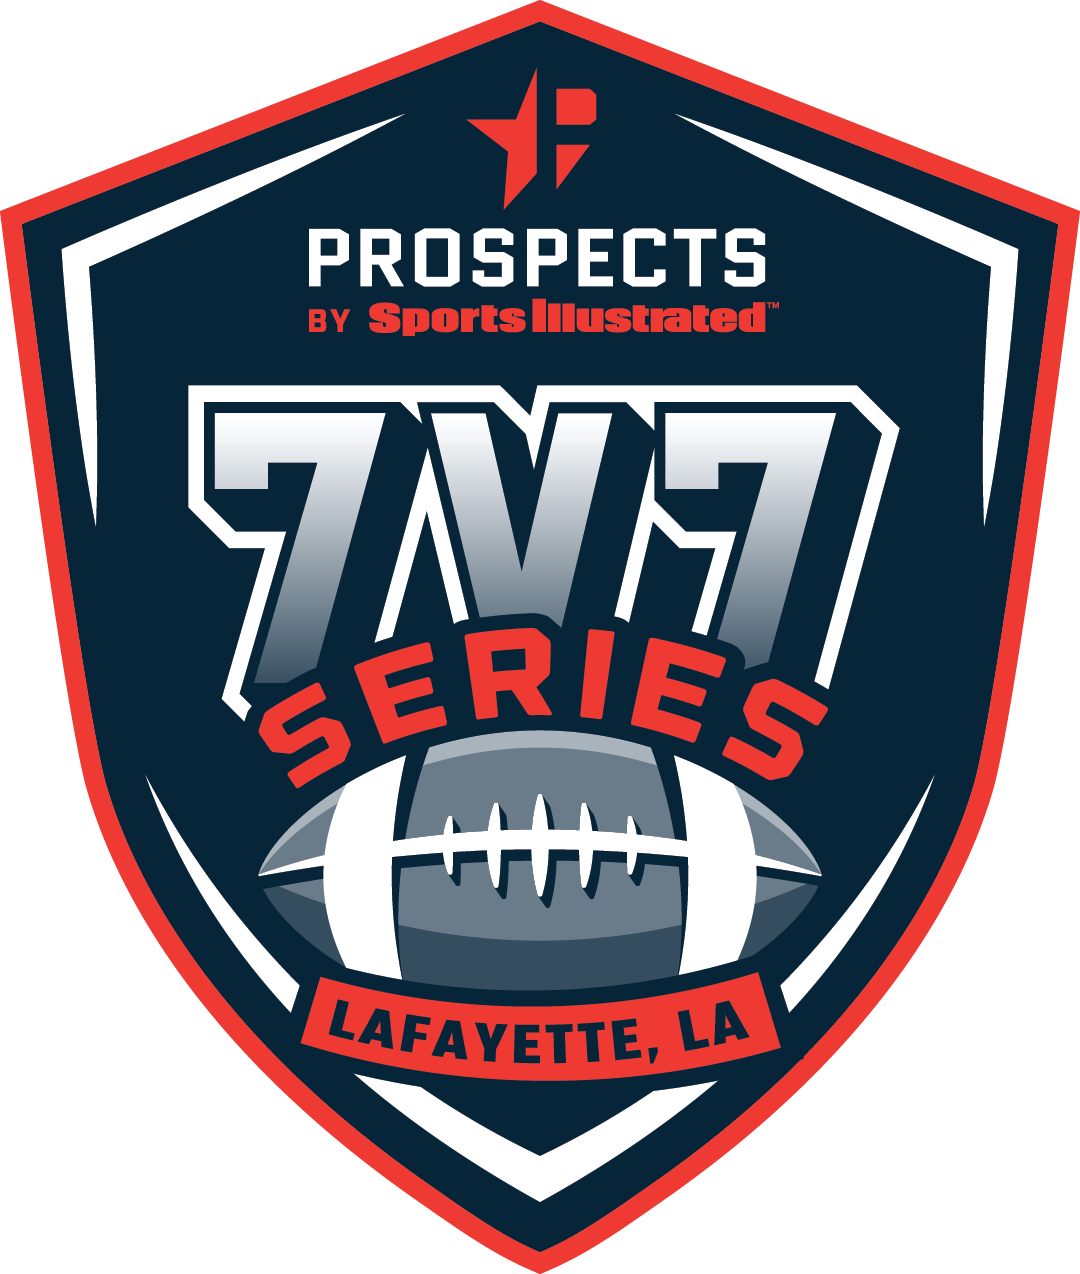 PSI 7 v 7 Series - Lafayette (La.) Major logo